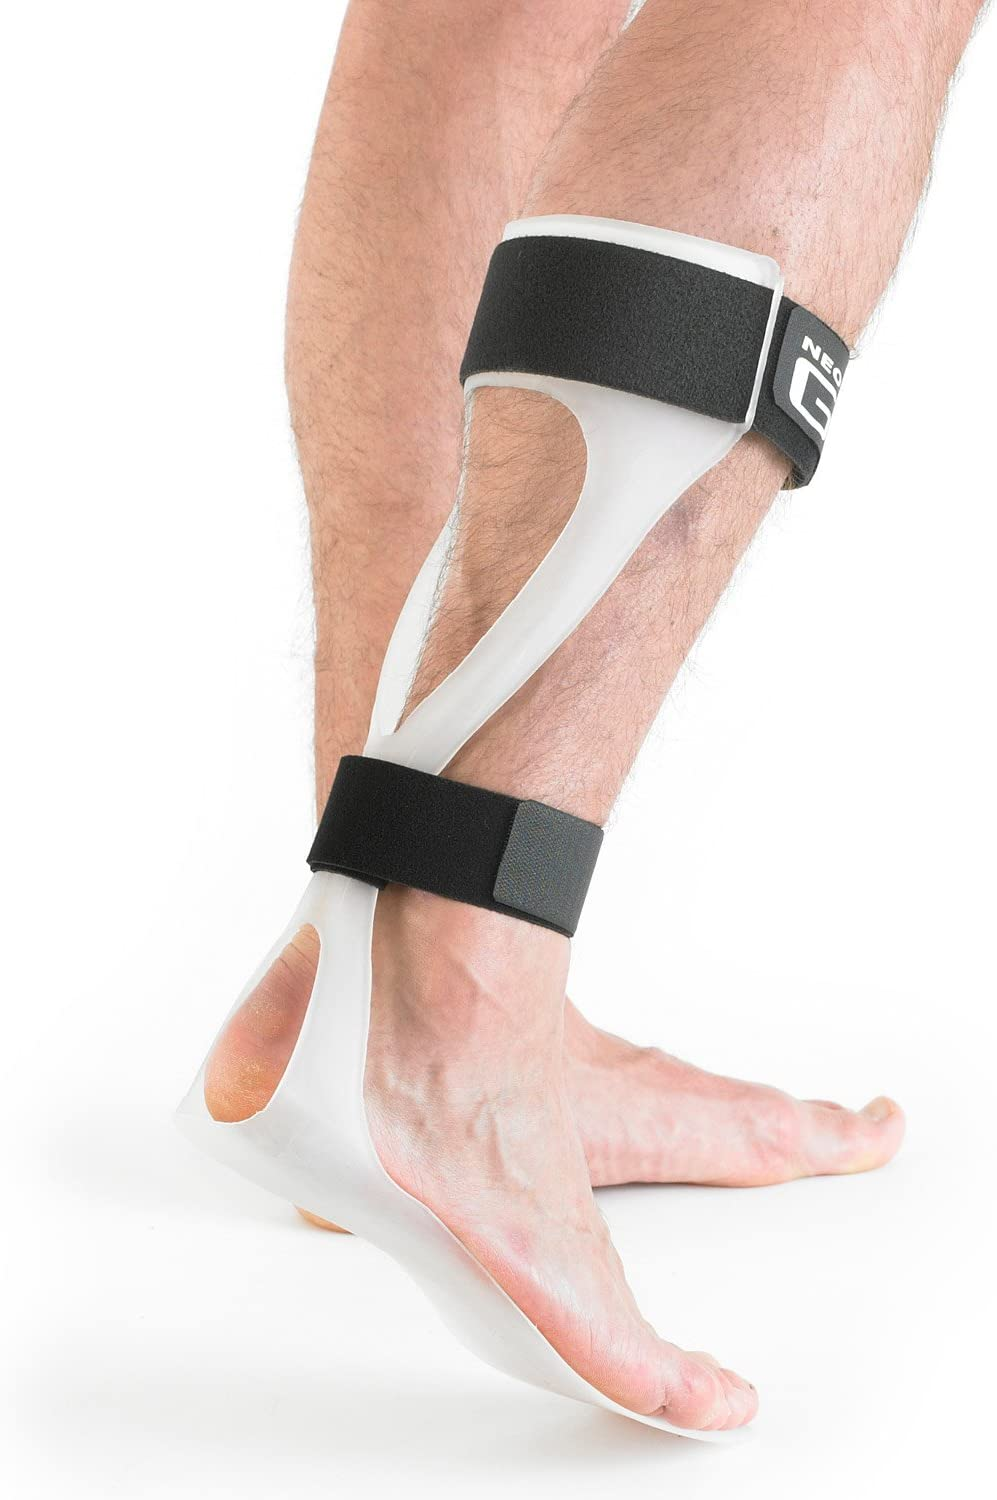 Neo All stores are sold G Foot Drop specialty shop Brace – - Splint AFO Suppo Reflex